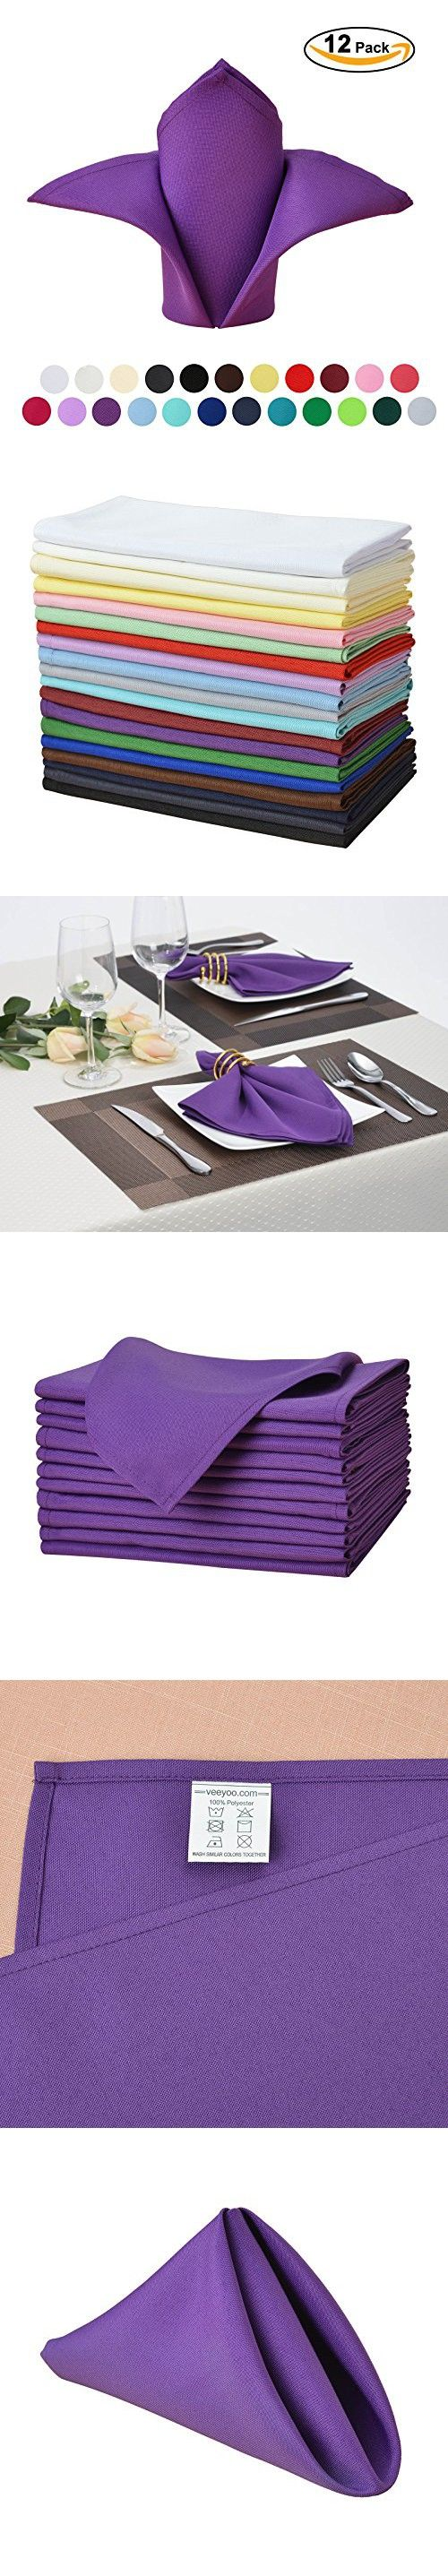 """VEEYOO Oversized 17x17"""" Solid Polyester Napkins for Wedding Restaurant Dinner Use Machine Washable Durable Set of 12, Purple"""